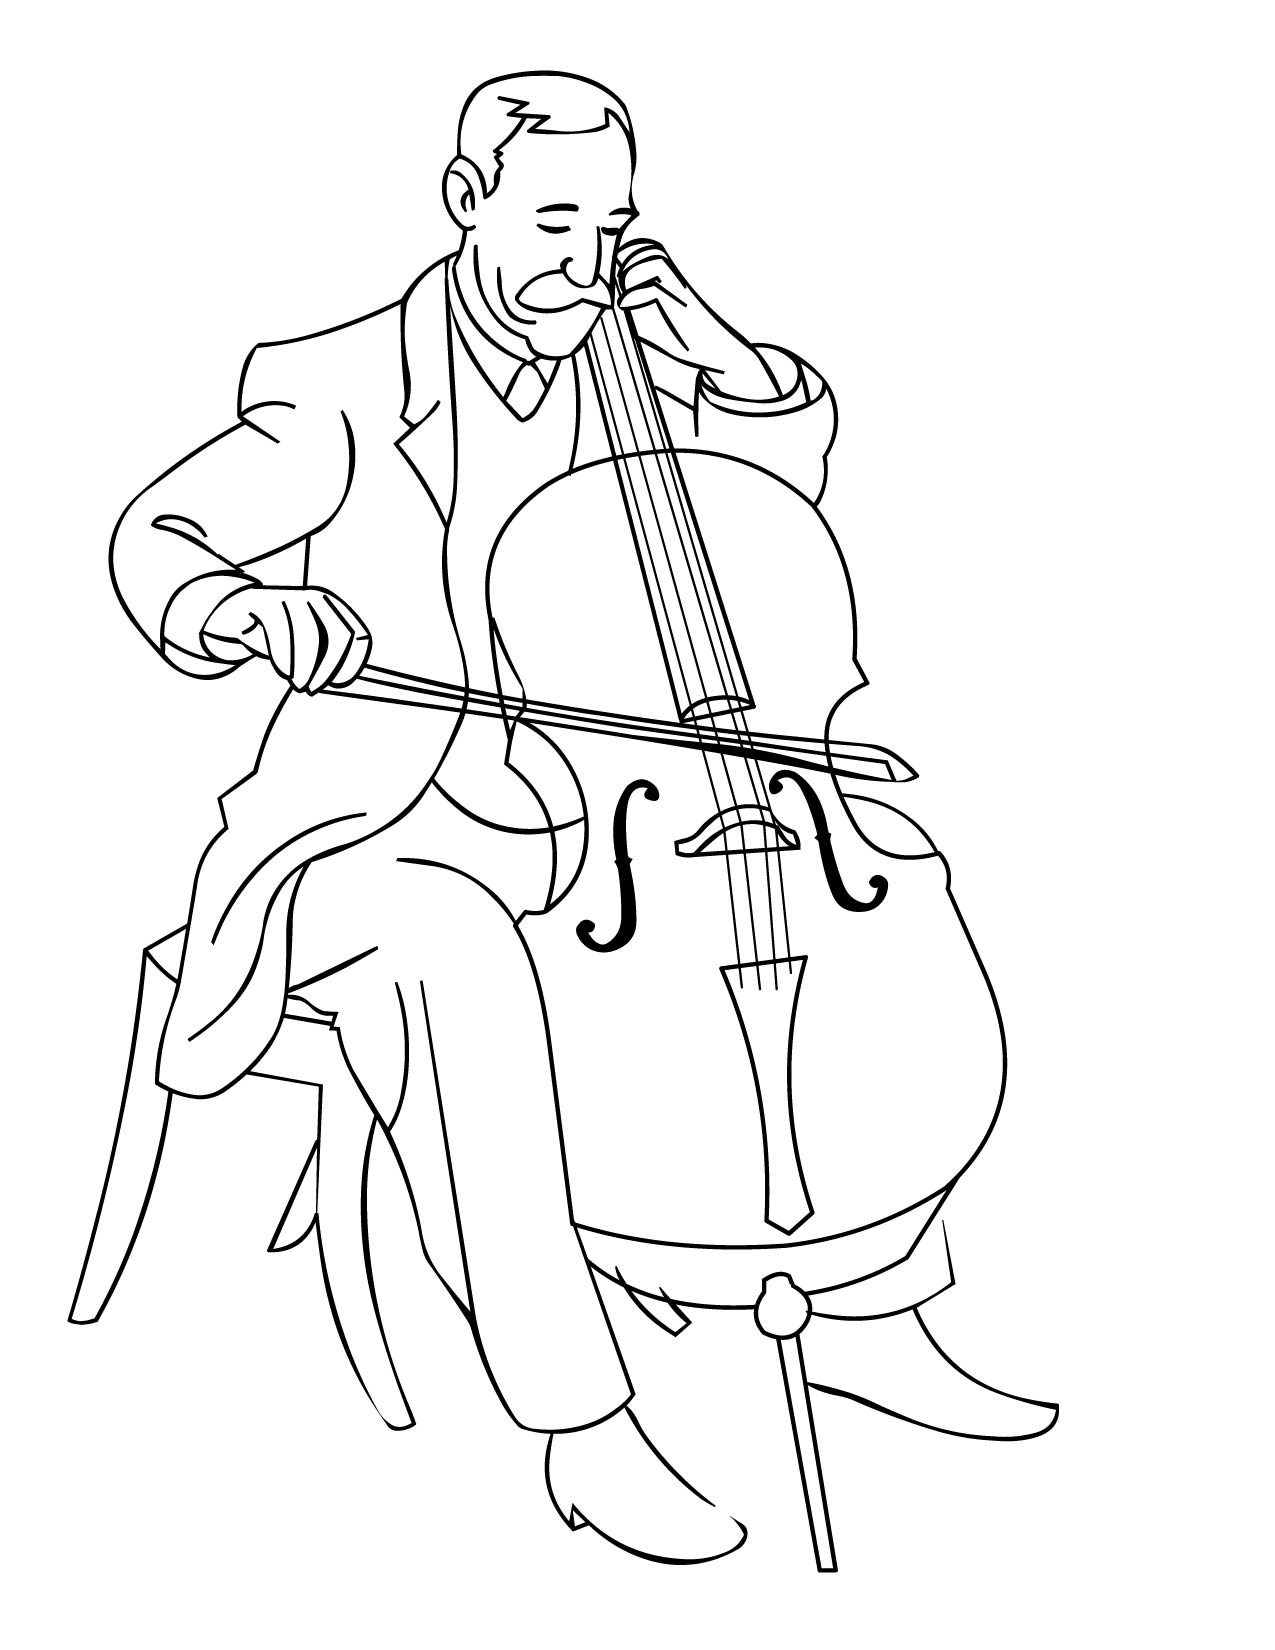 Cello Coloring Pages